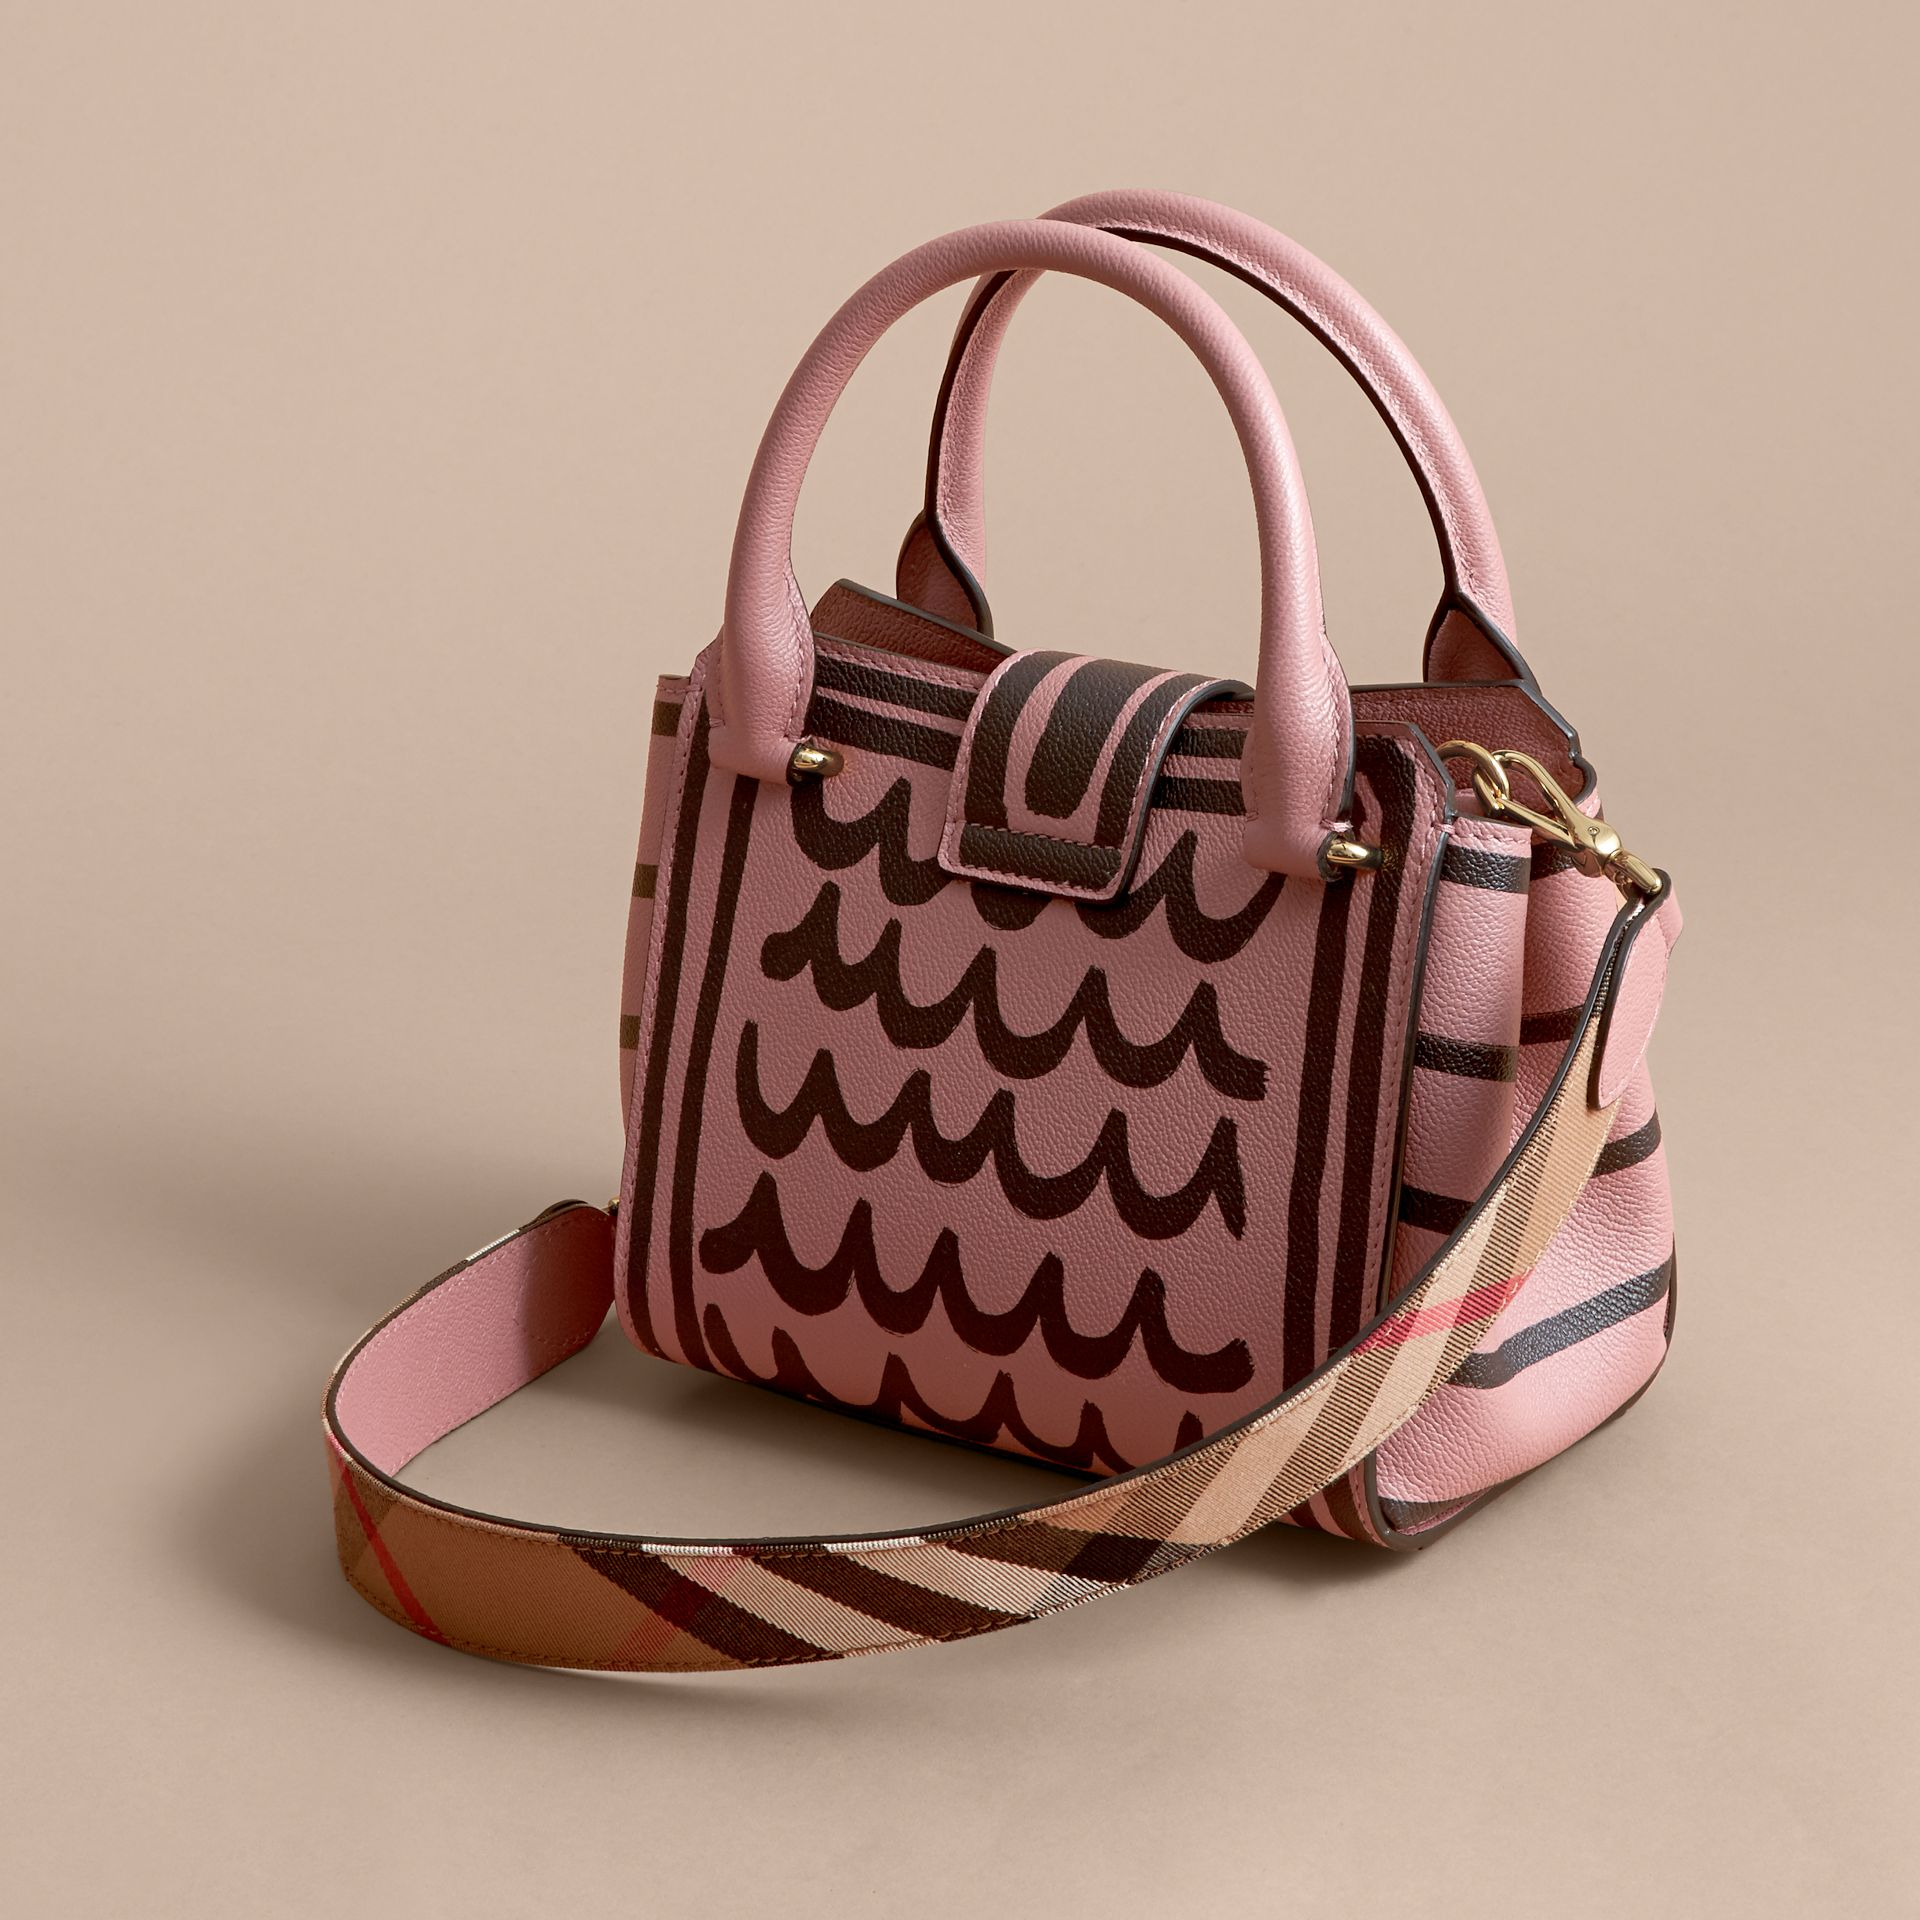 The Small Buckle Tote in Trompe L'oeil Print Leather - Women | Burberry - gallery image 5